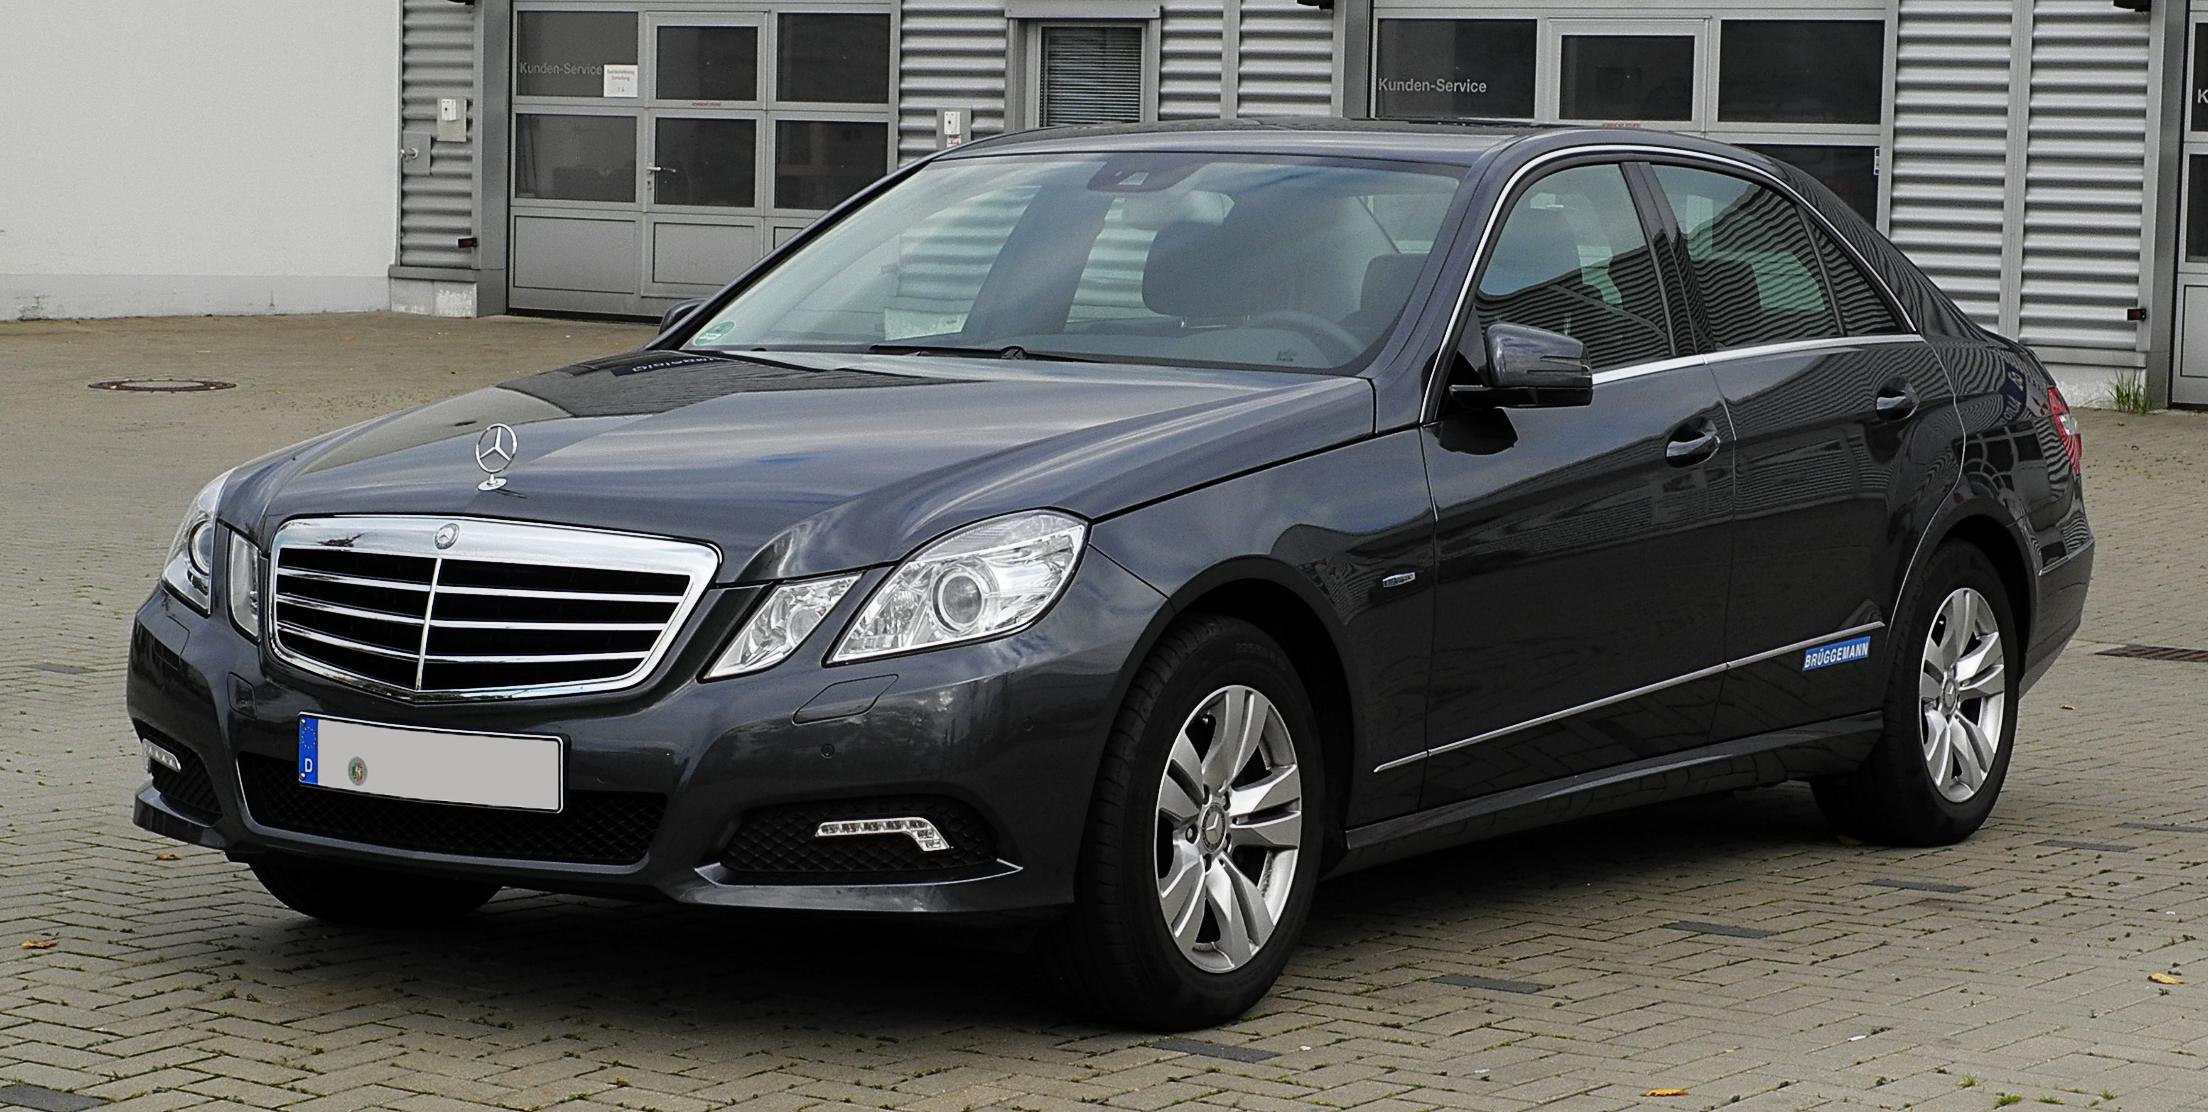 file mercedes benz e 200 cgi blueefficinecy avantgarde w